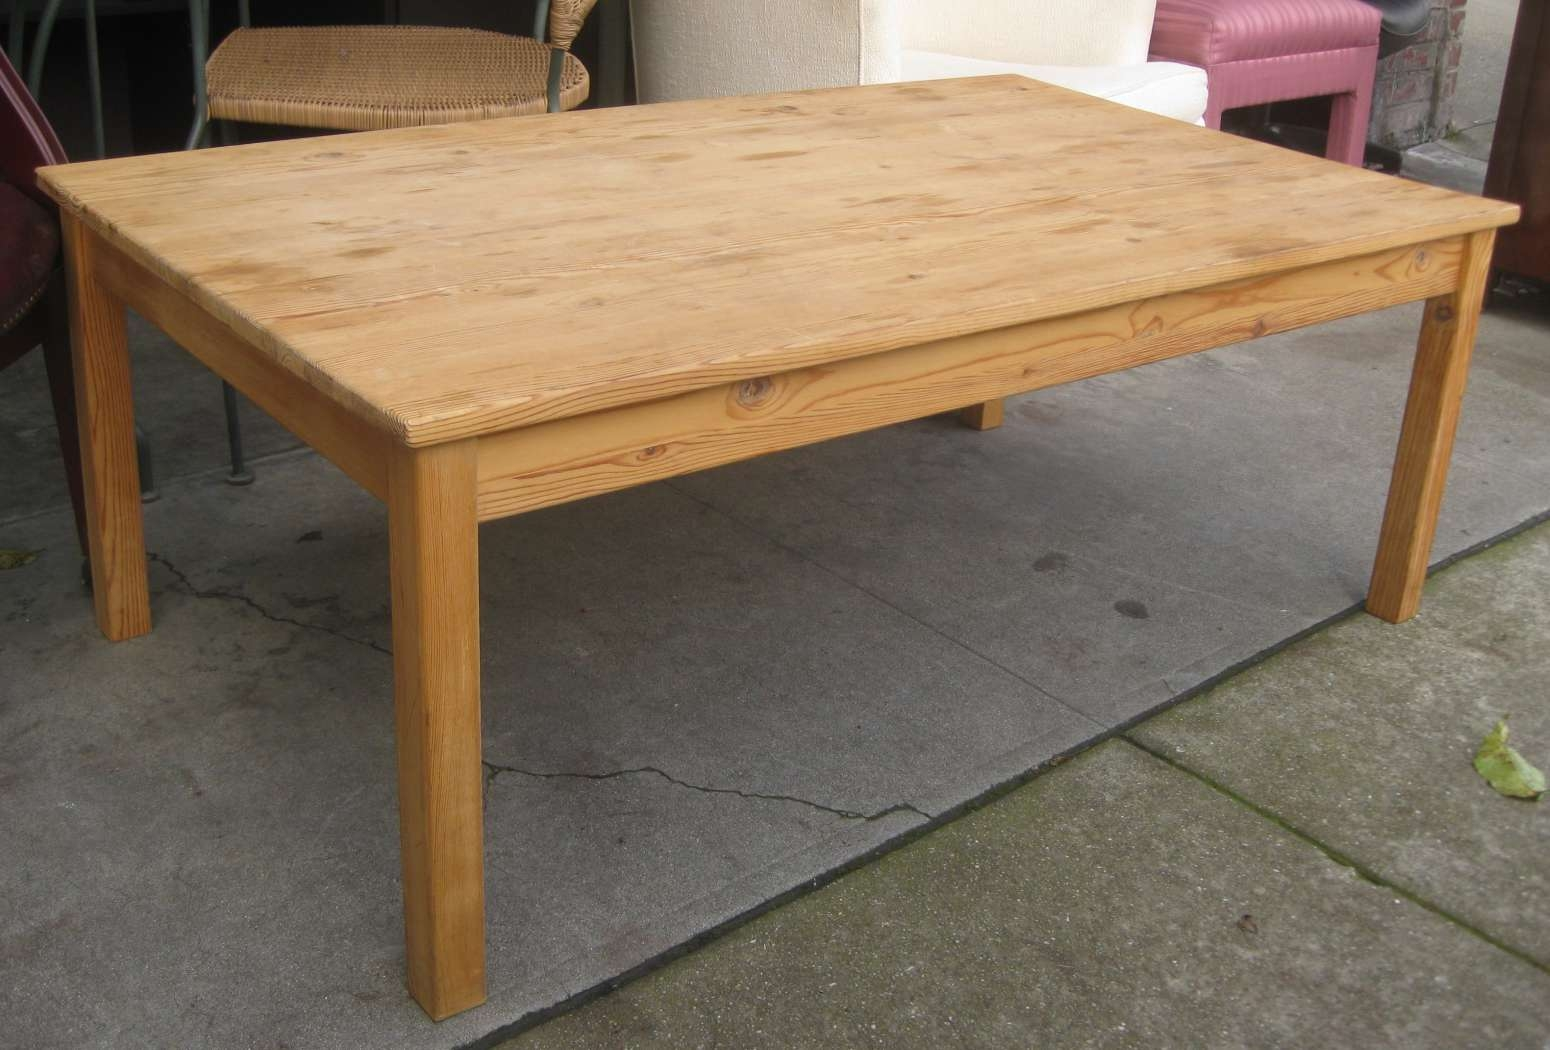 Widely Used Square Pine Coffee Tables Pertaining To Uhuru Furniture & Collectibles: Sold – Pine Coffee Table – $ (View 6 of 20)